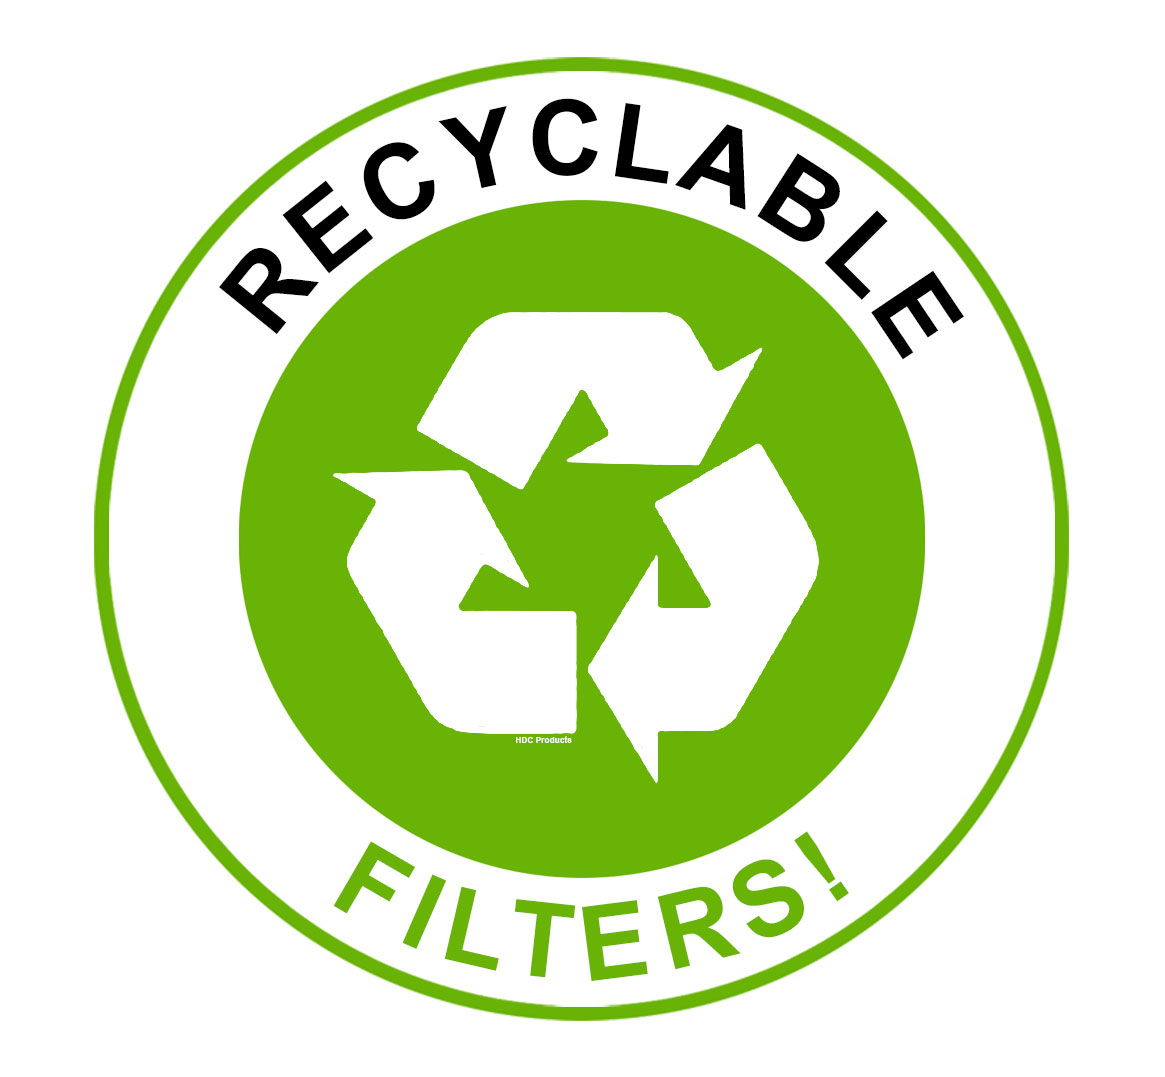 recyclable filters